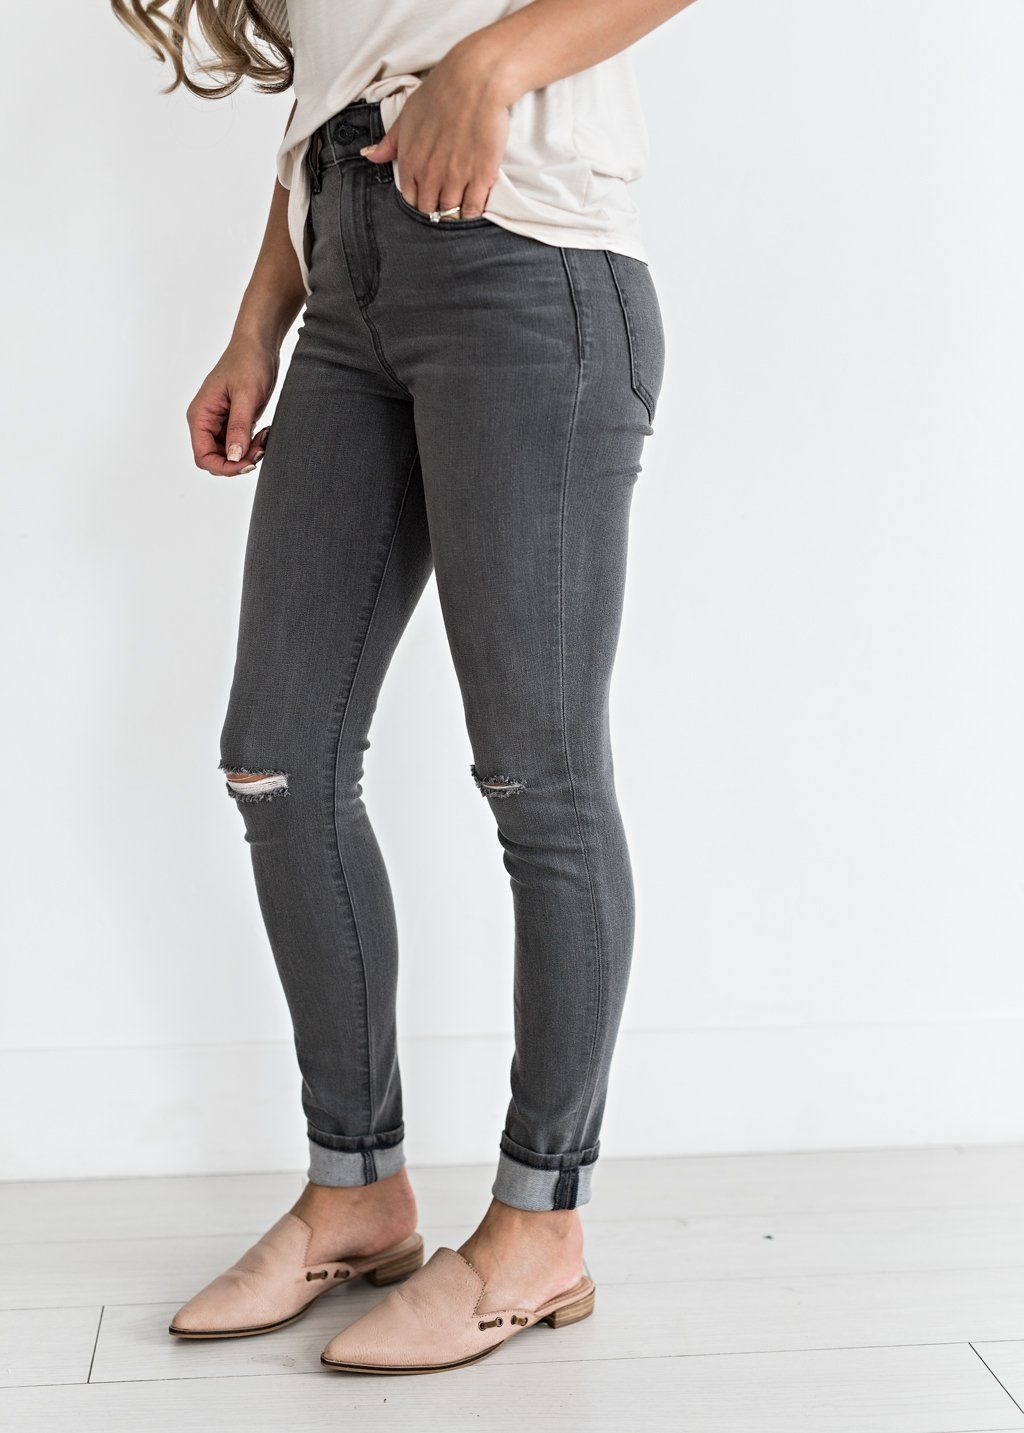 Grey Distressed Jeans Jessakae New Arrivals Distressed Denim